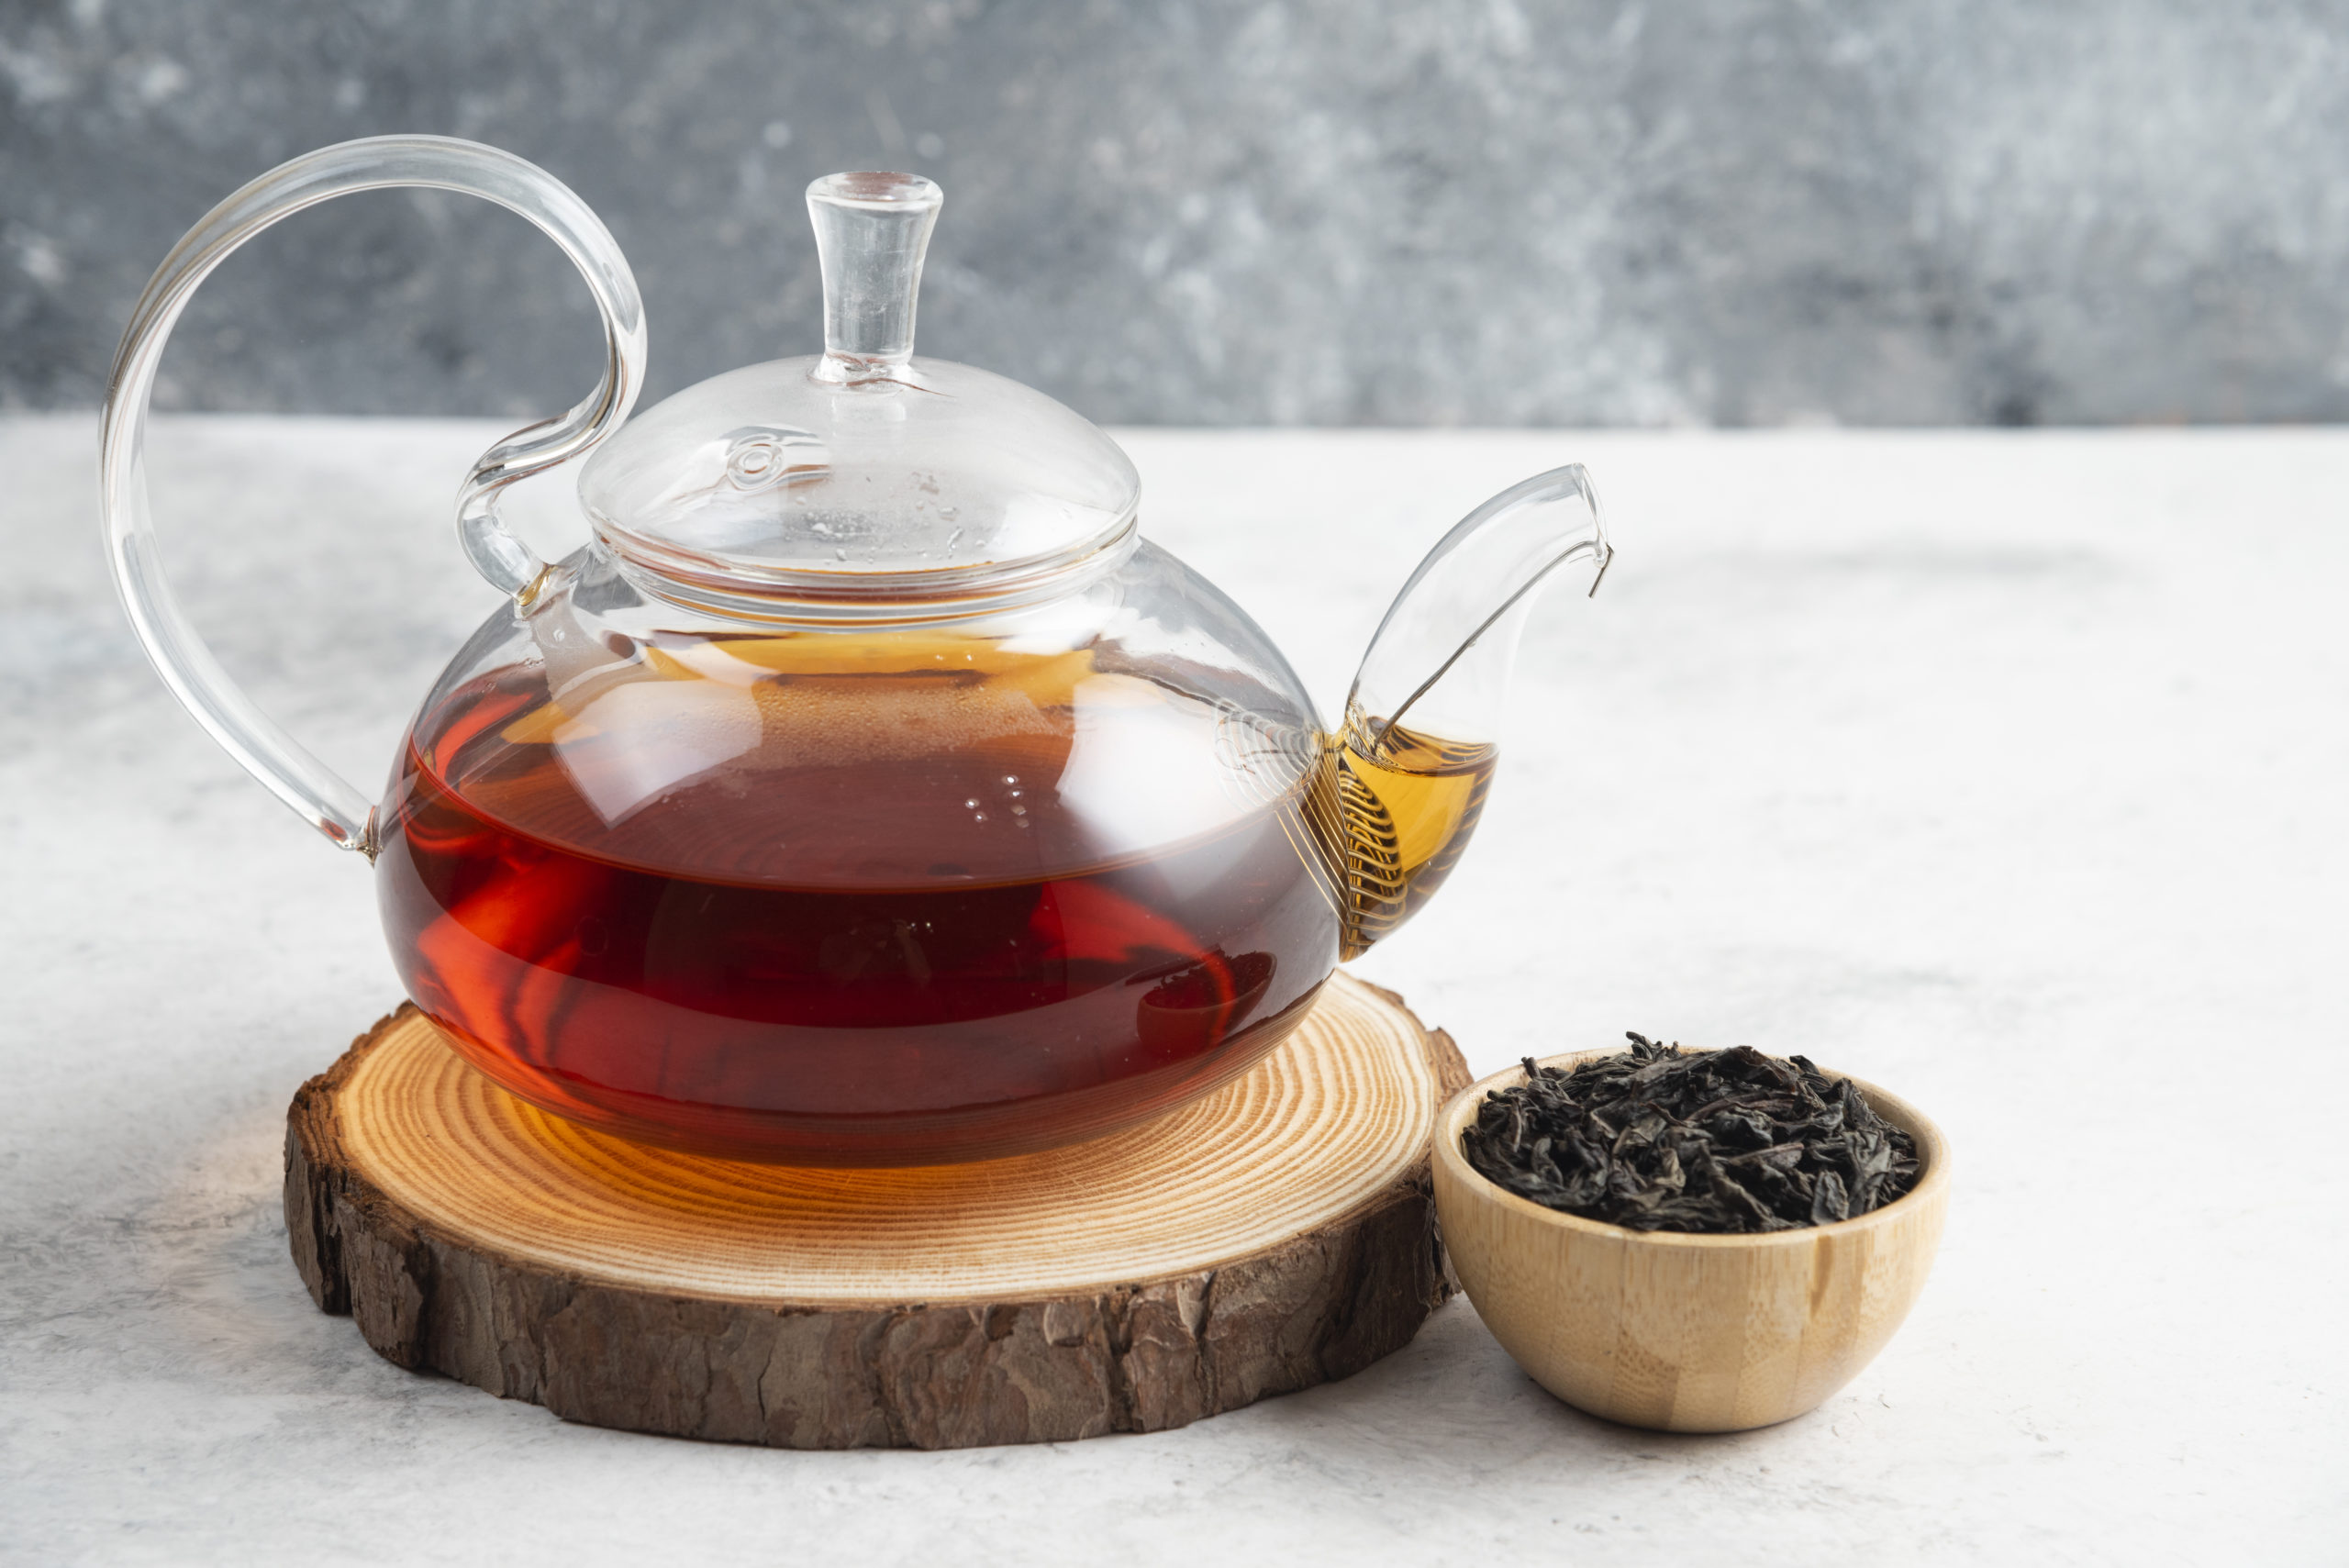 The Procedure for Making a Perfect Cup of Tea